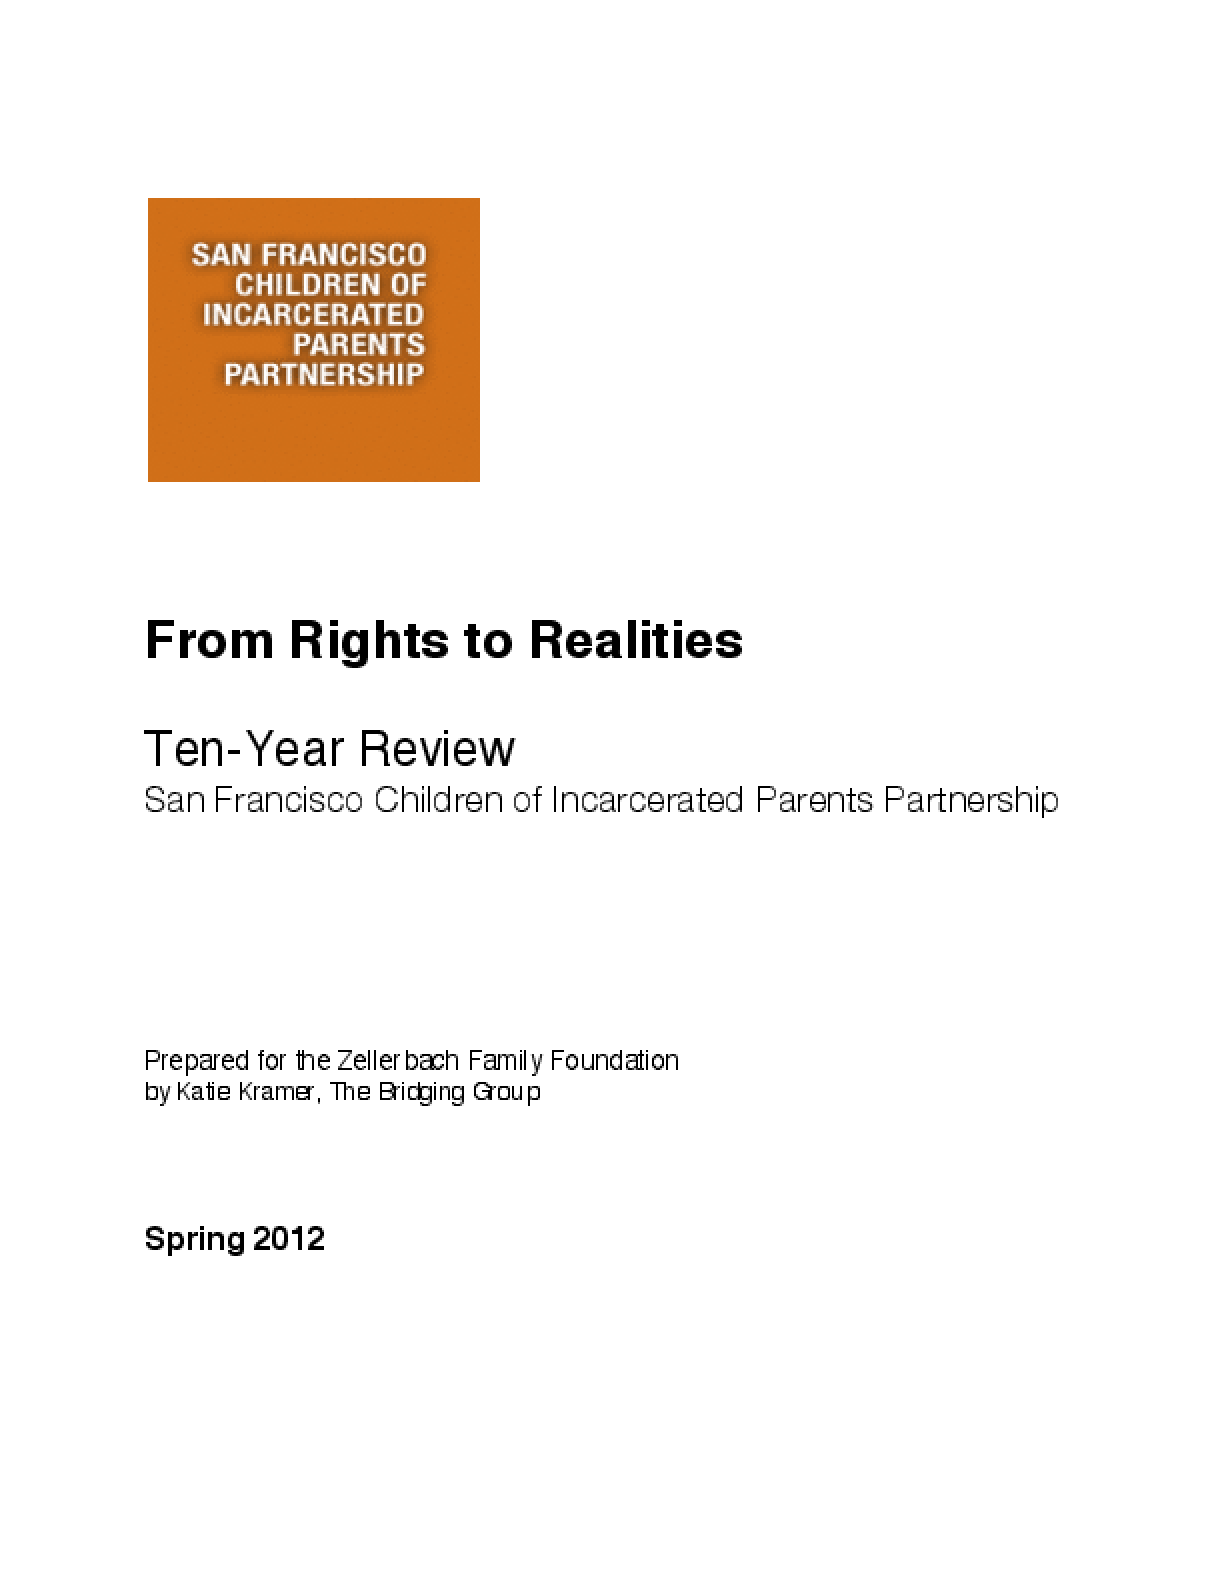 SFCIPP - From Rights to Realities